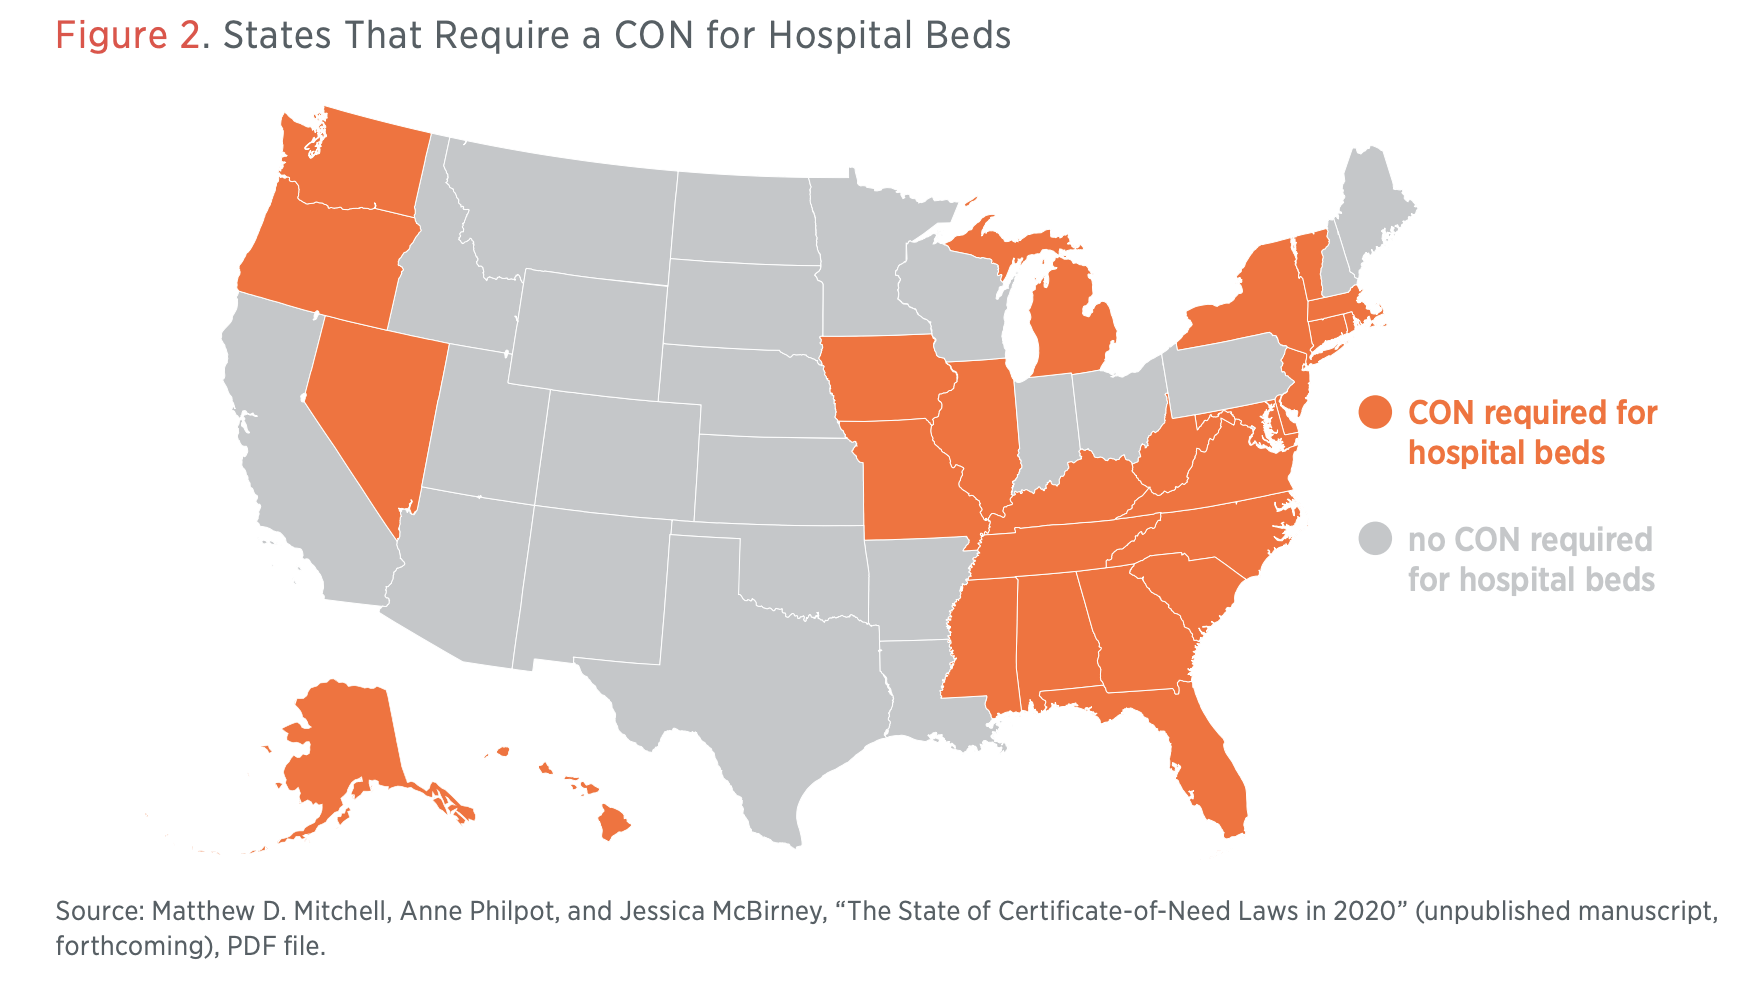 Figure 2. States That Require a CON for Hospital Beds